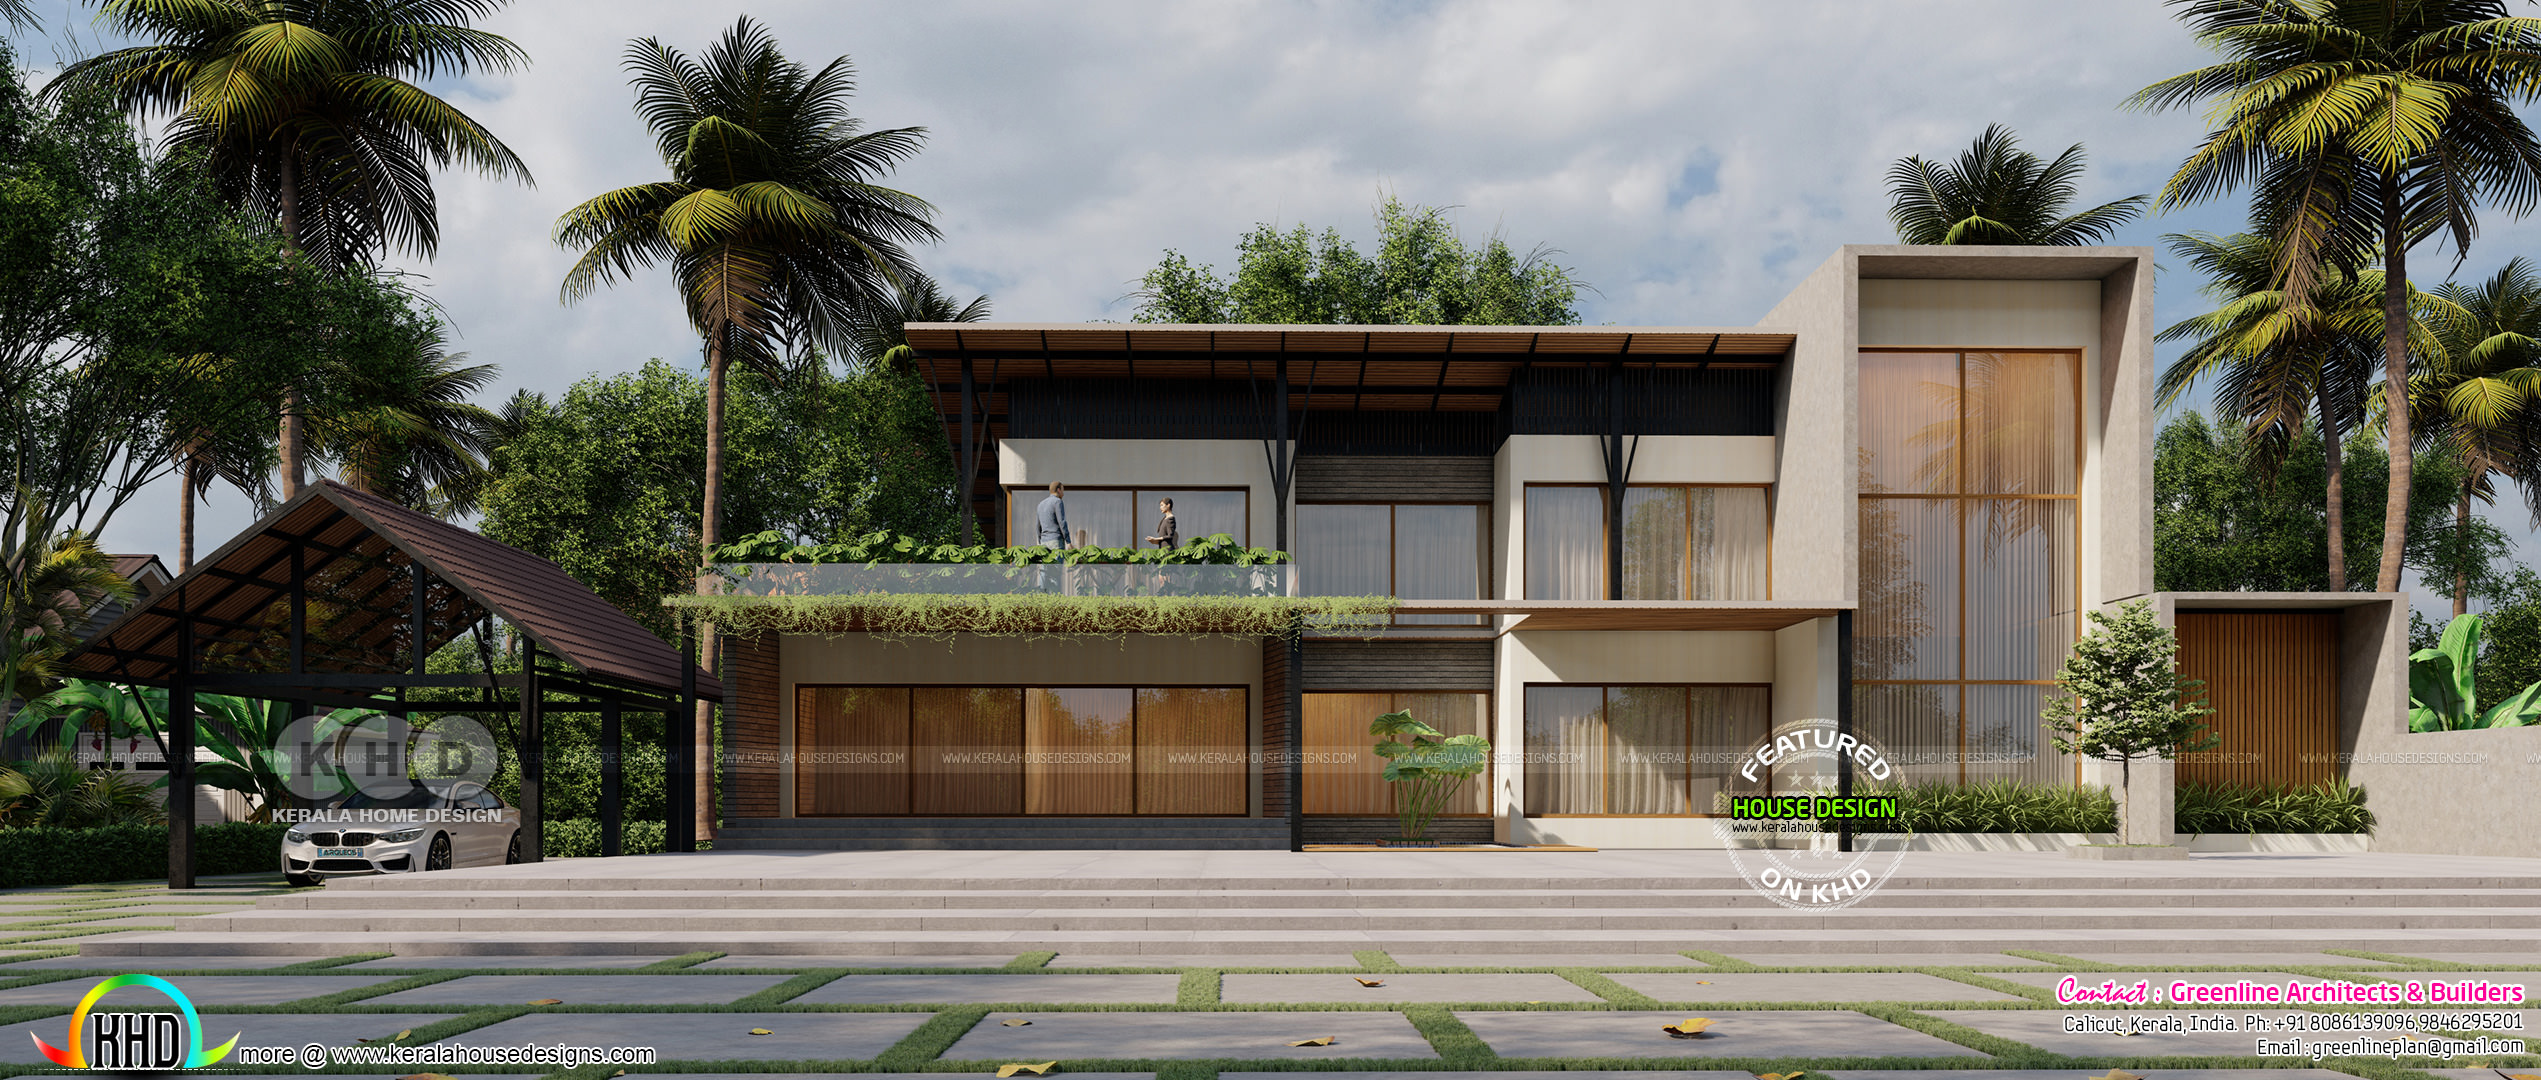 Tropical House Design With 5 Bedrooms Kerala Home Design And Floor Plans 8000 Houses